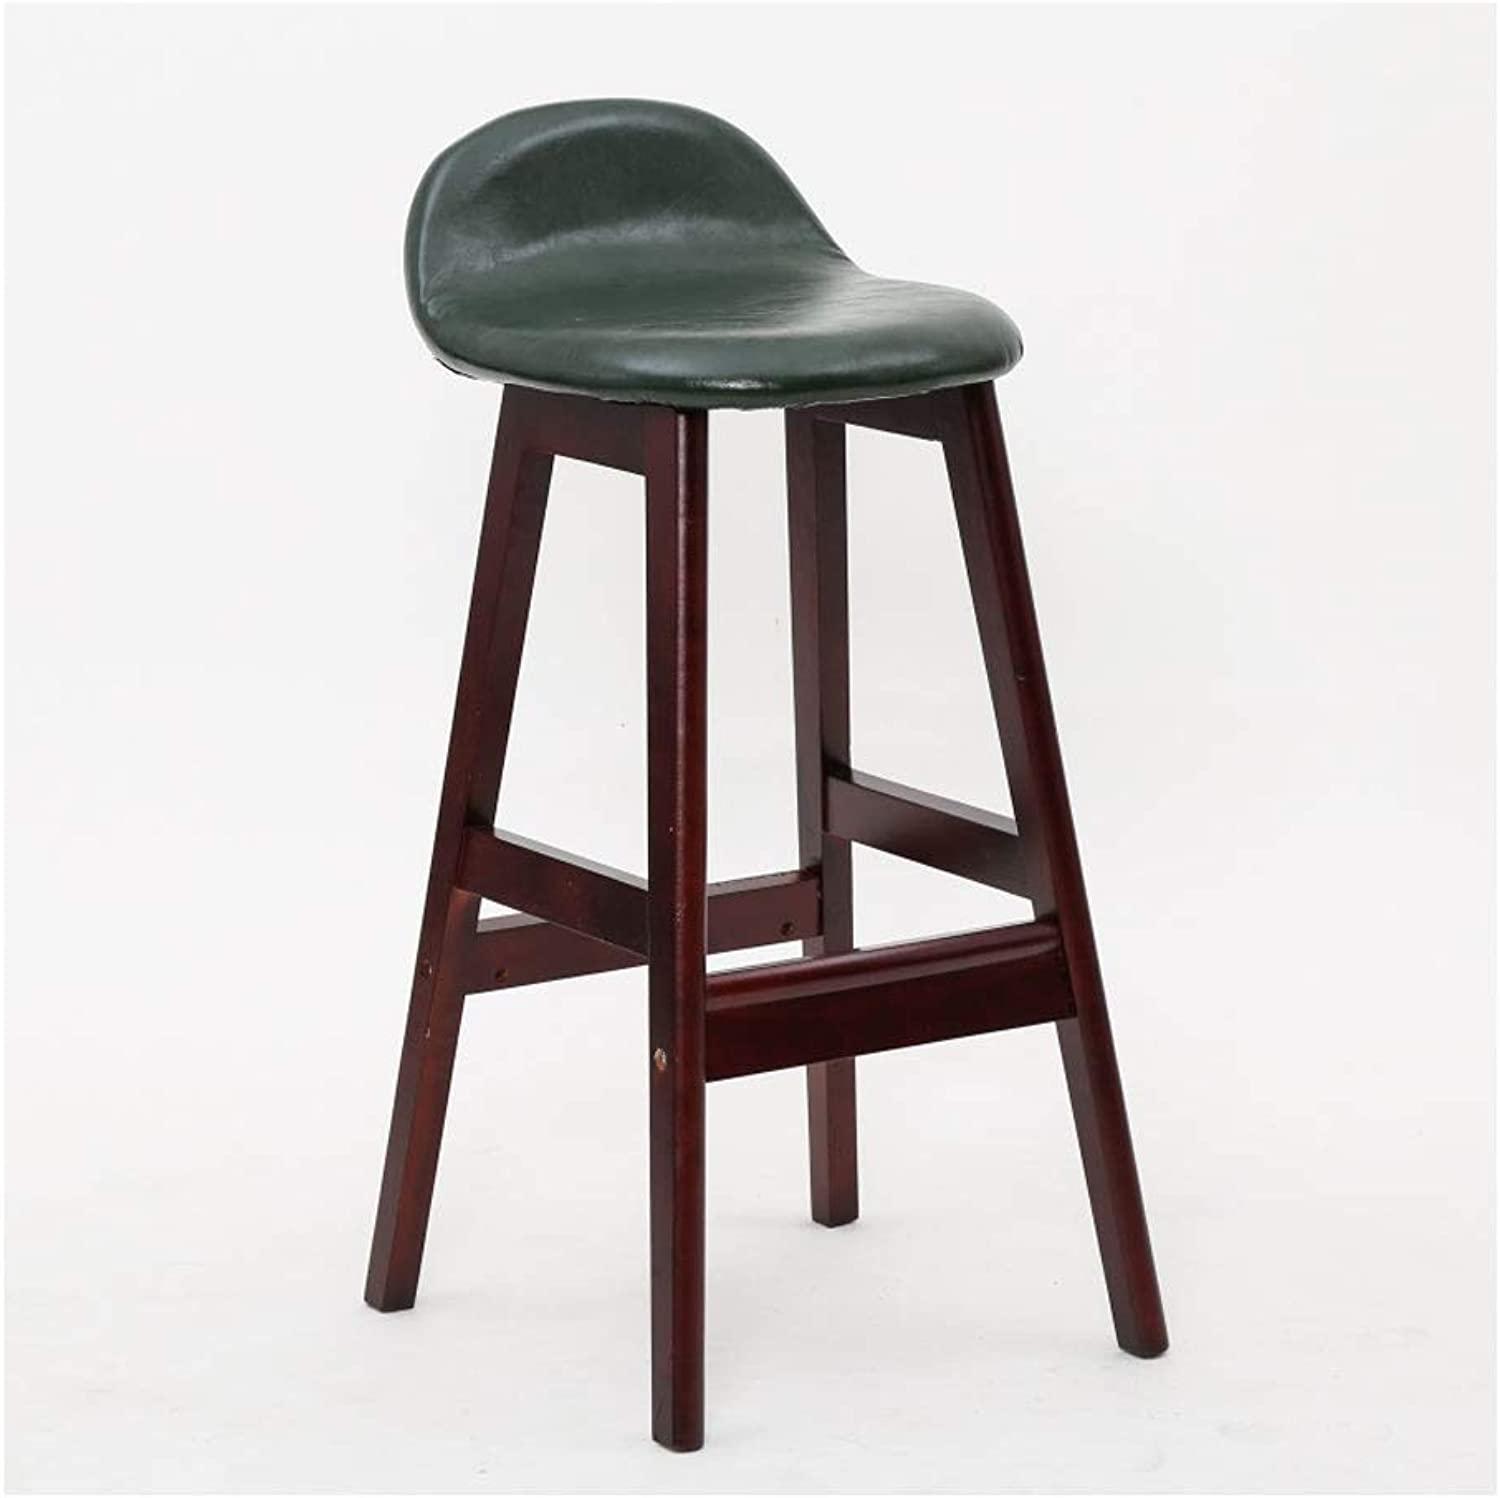 A+ Solid Wood Dining Chair with Backrest, Natural Wood Grain color High Chair, Vintage High-Elastic Sponge-Filled Bar Stool, 4 colors (color   Bronze)